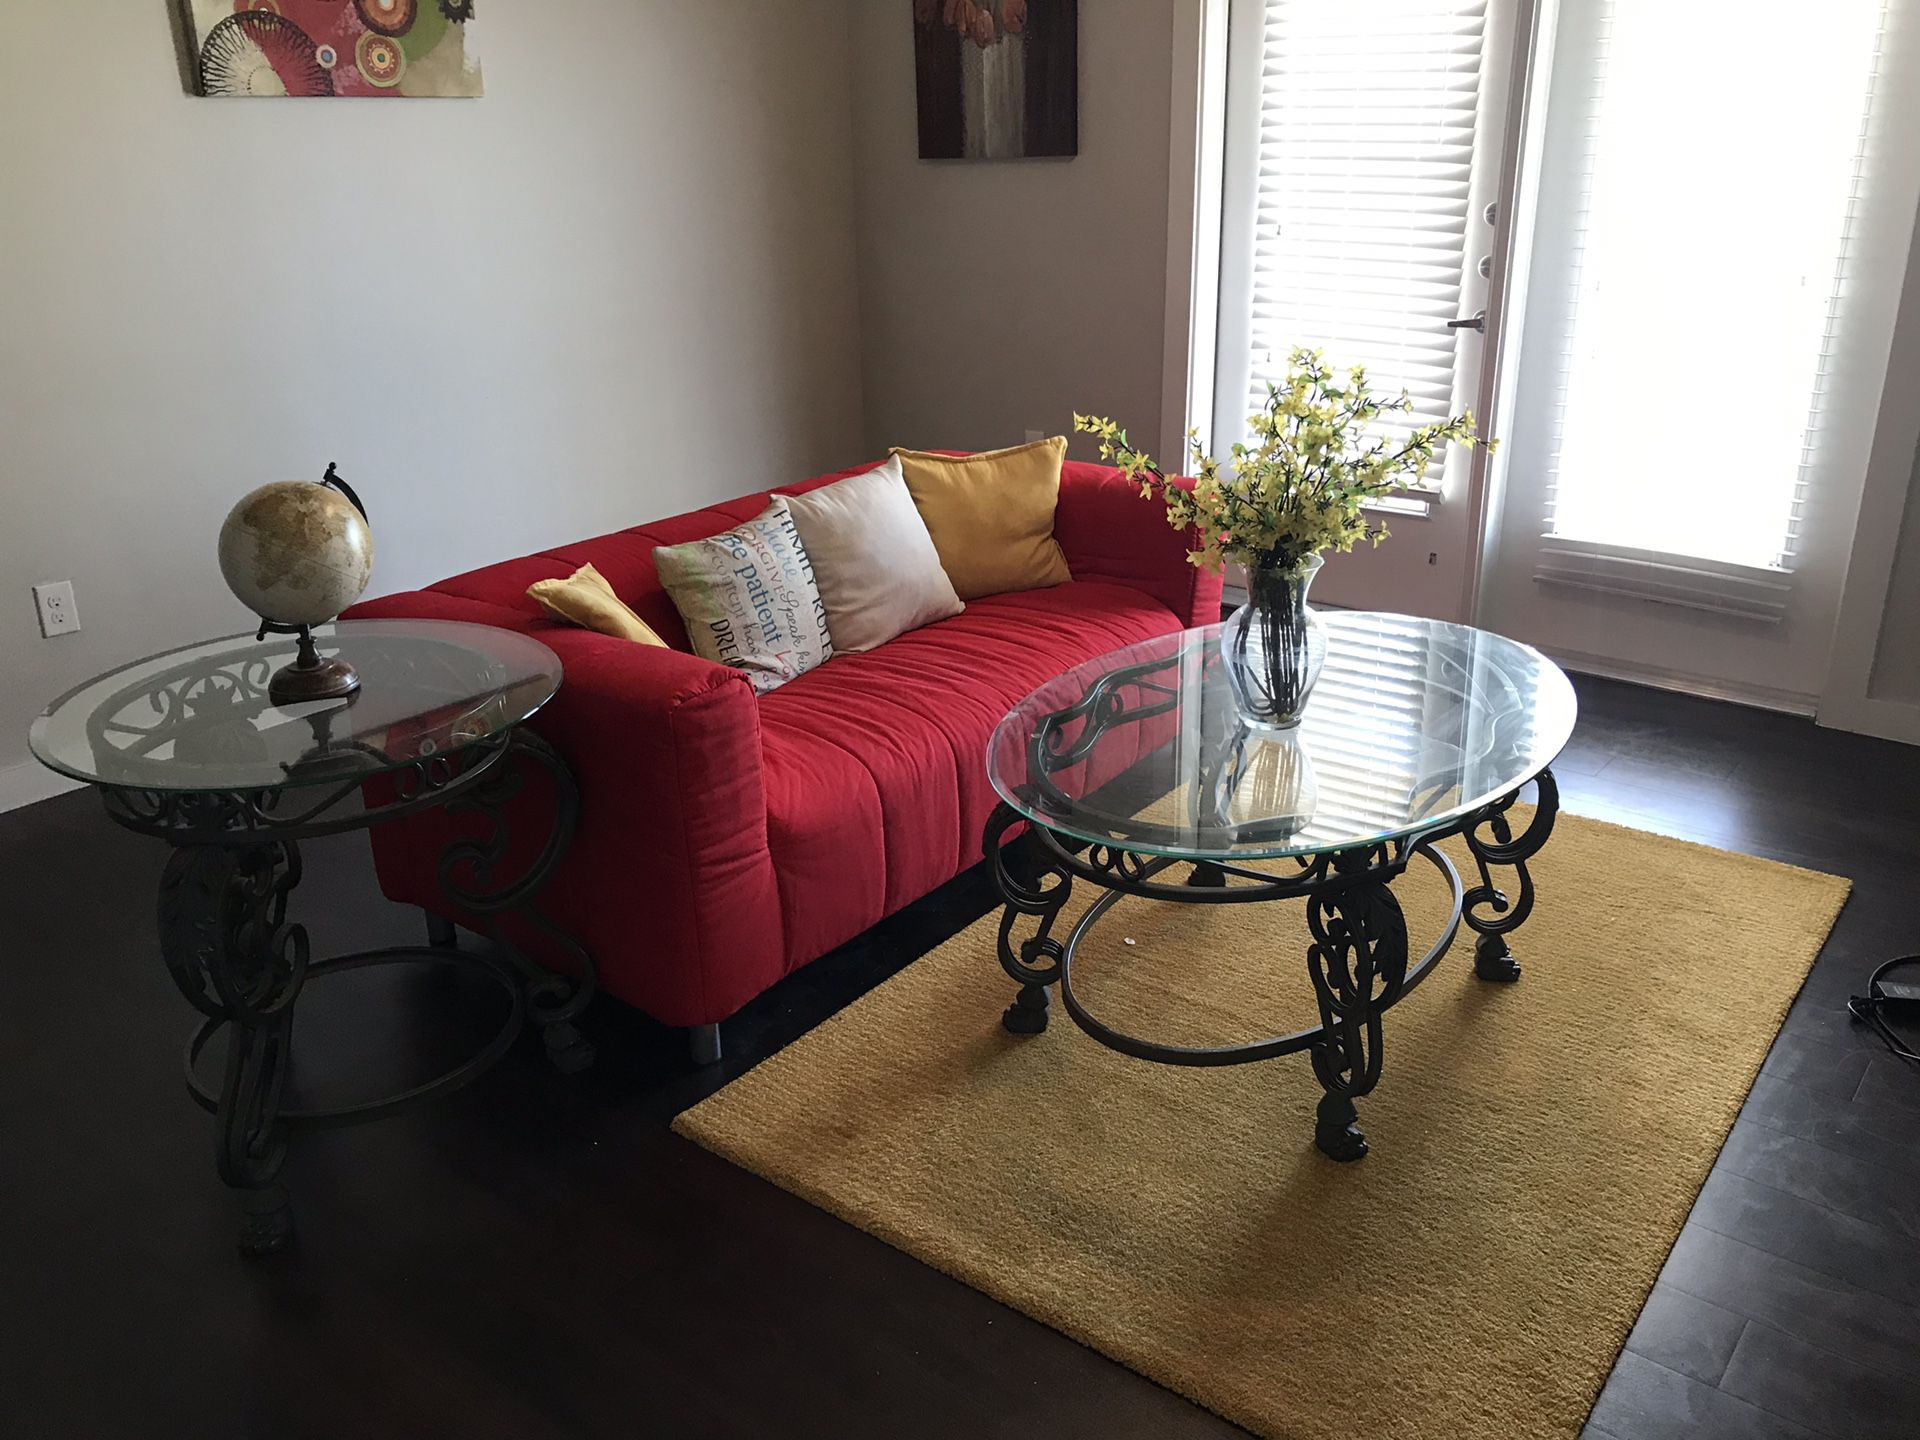 Mattress, box spring and night stands. Sofa tables and rug